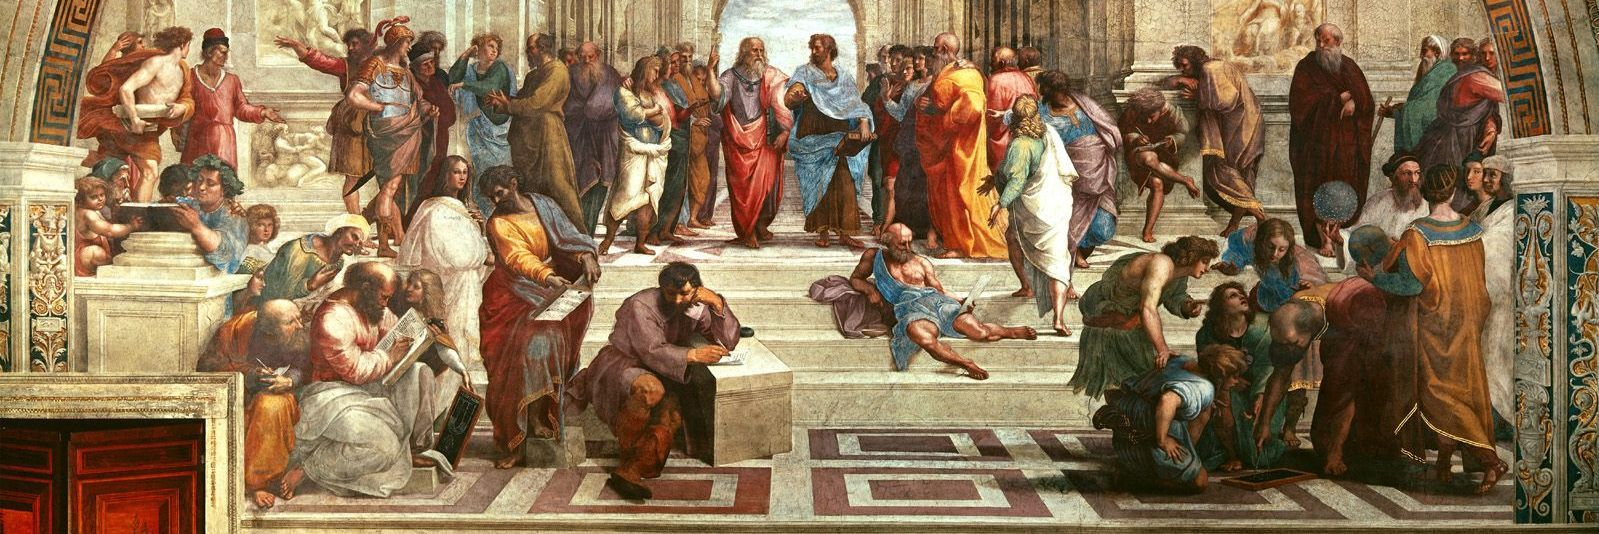 school-of-athens-detail-from-right-hand-side-showing-diogenes-on-the-steps-and-euclid-1511